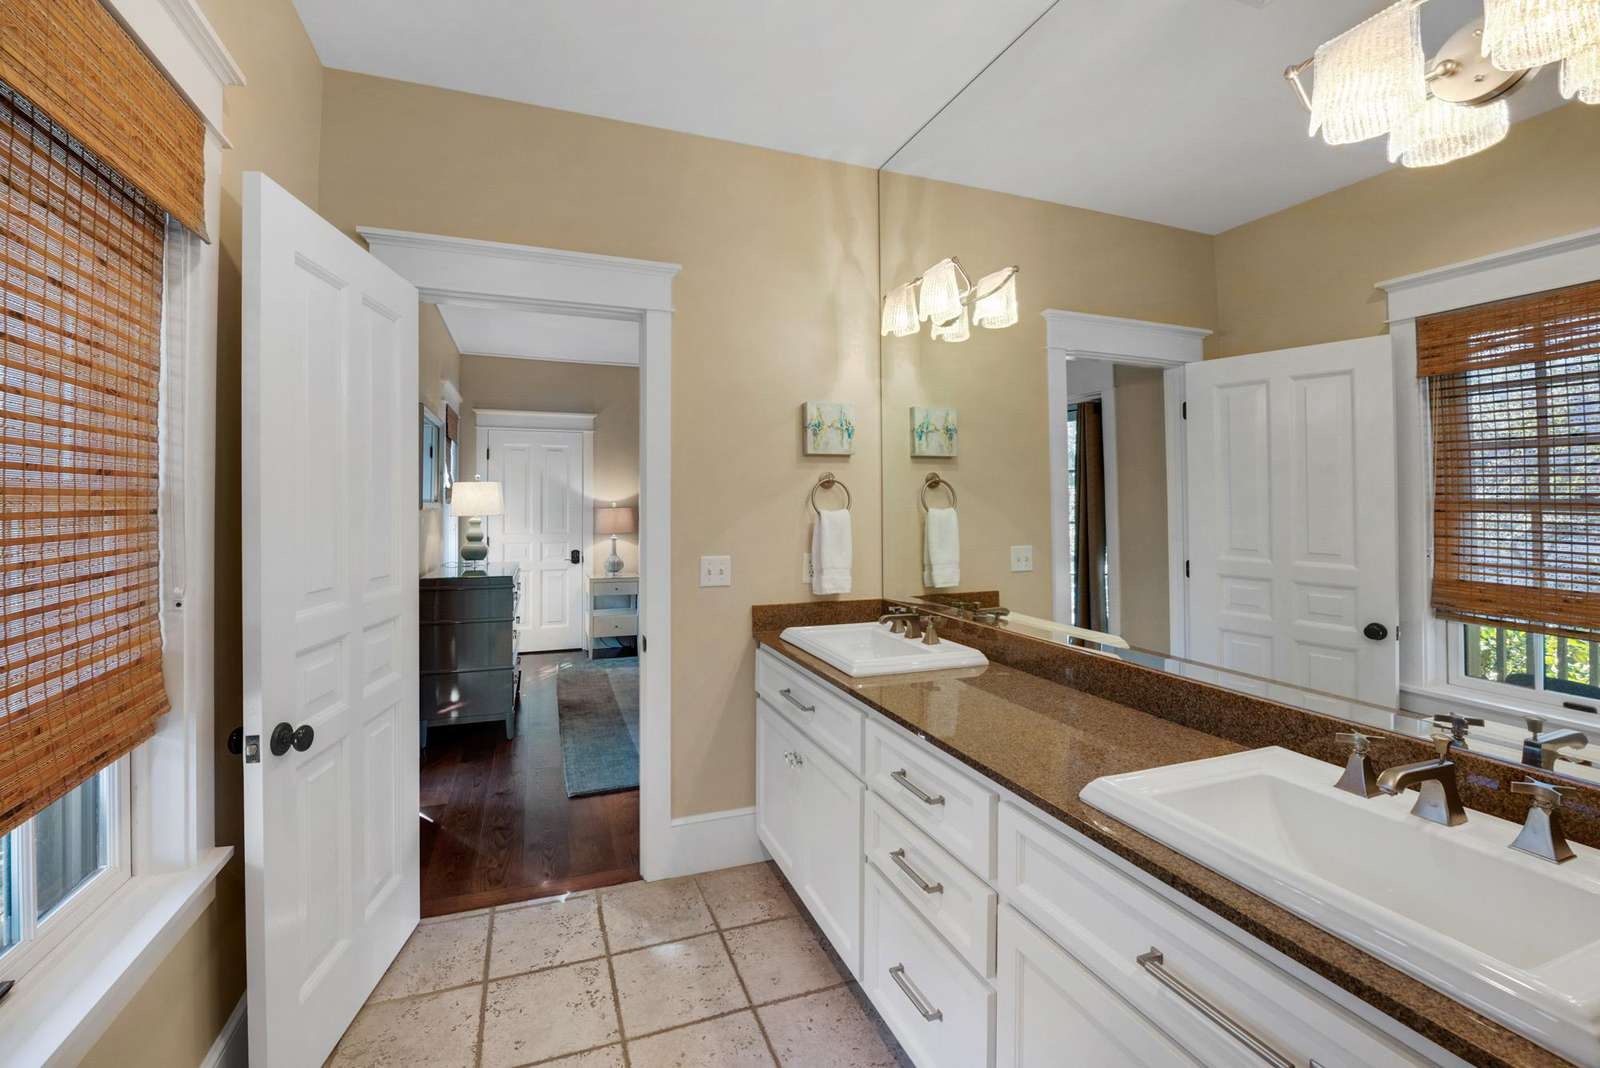 Second Floor Master Ensuite w/Double Vanity Sinks and Tub/Shower Combination